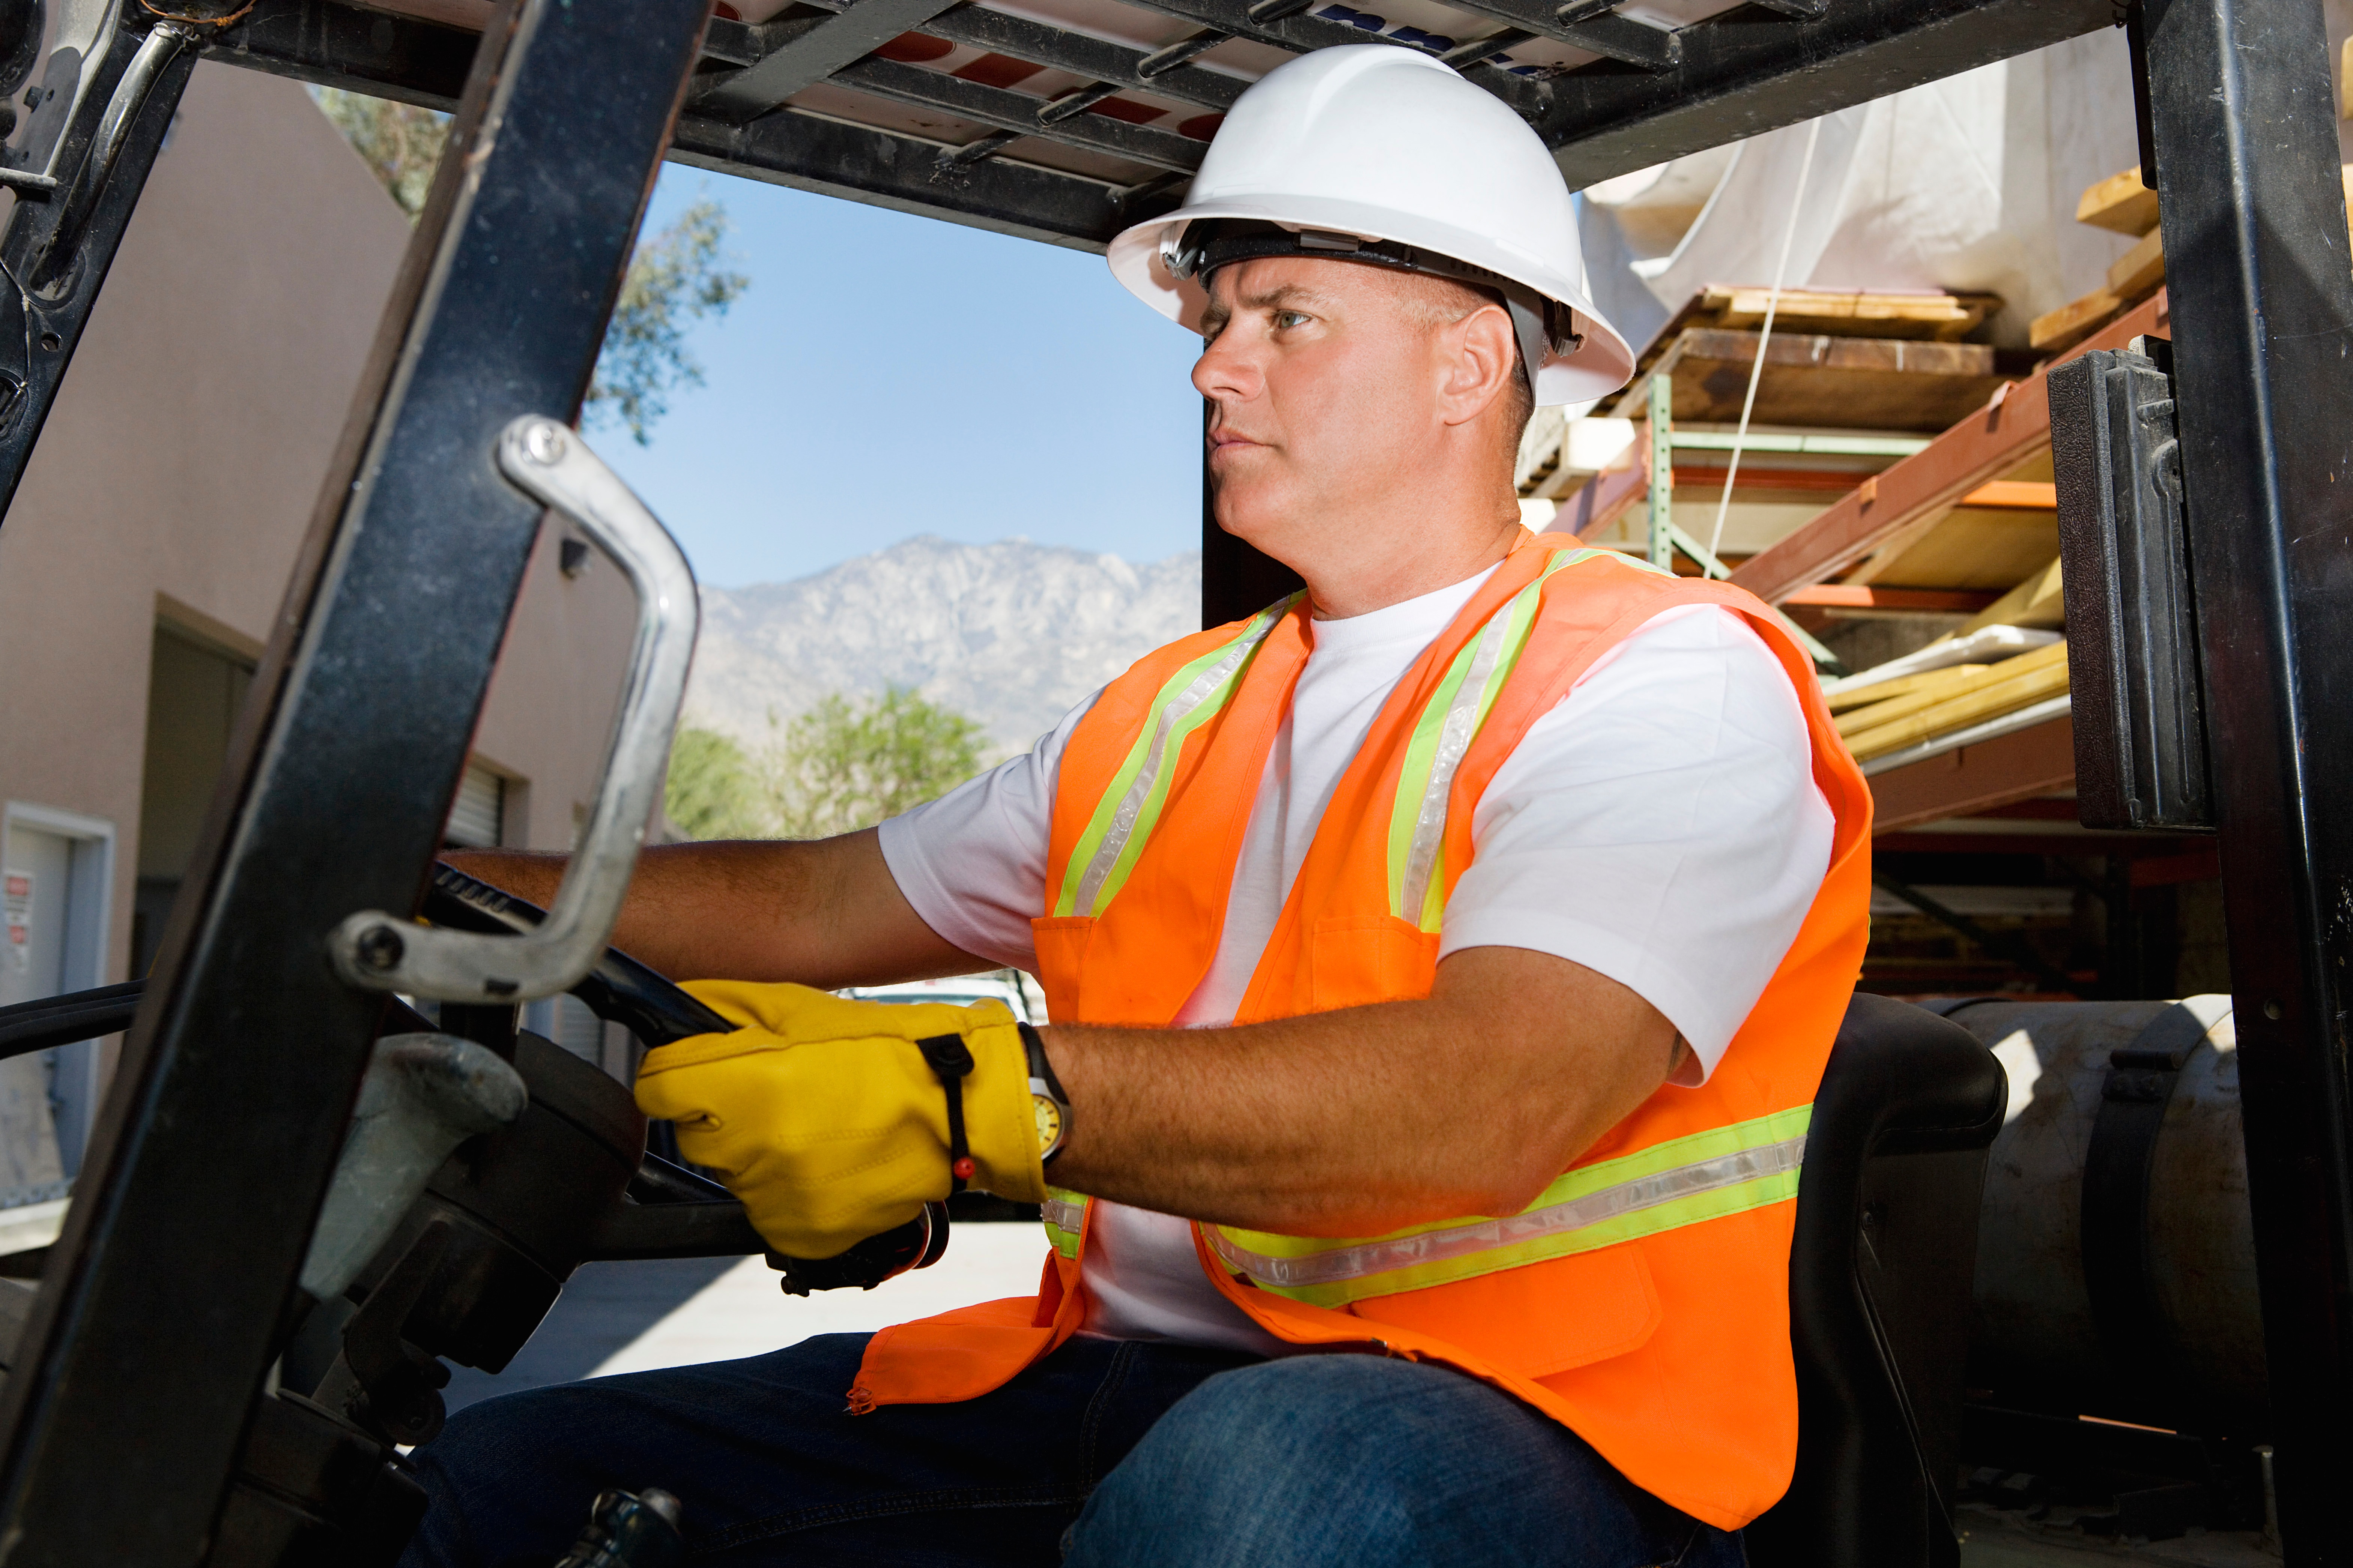 The Importance of Personal Protective Equipment in the Workplace